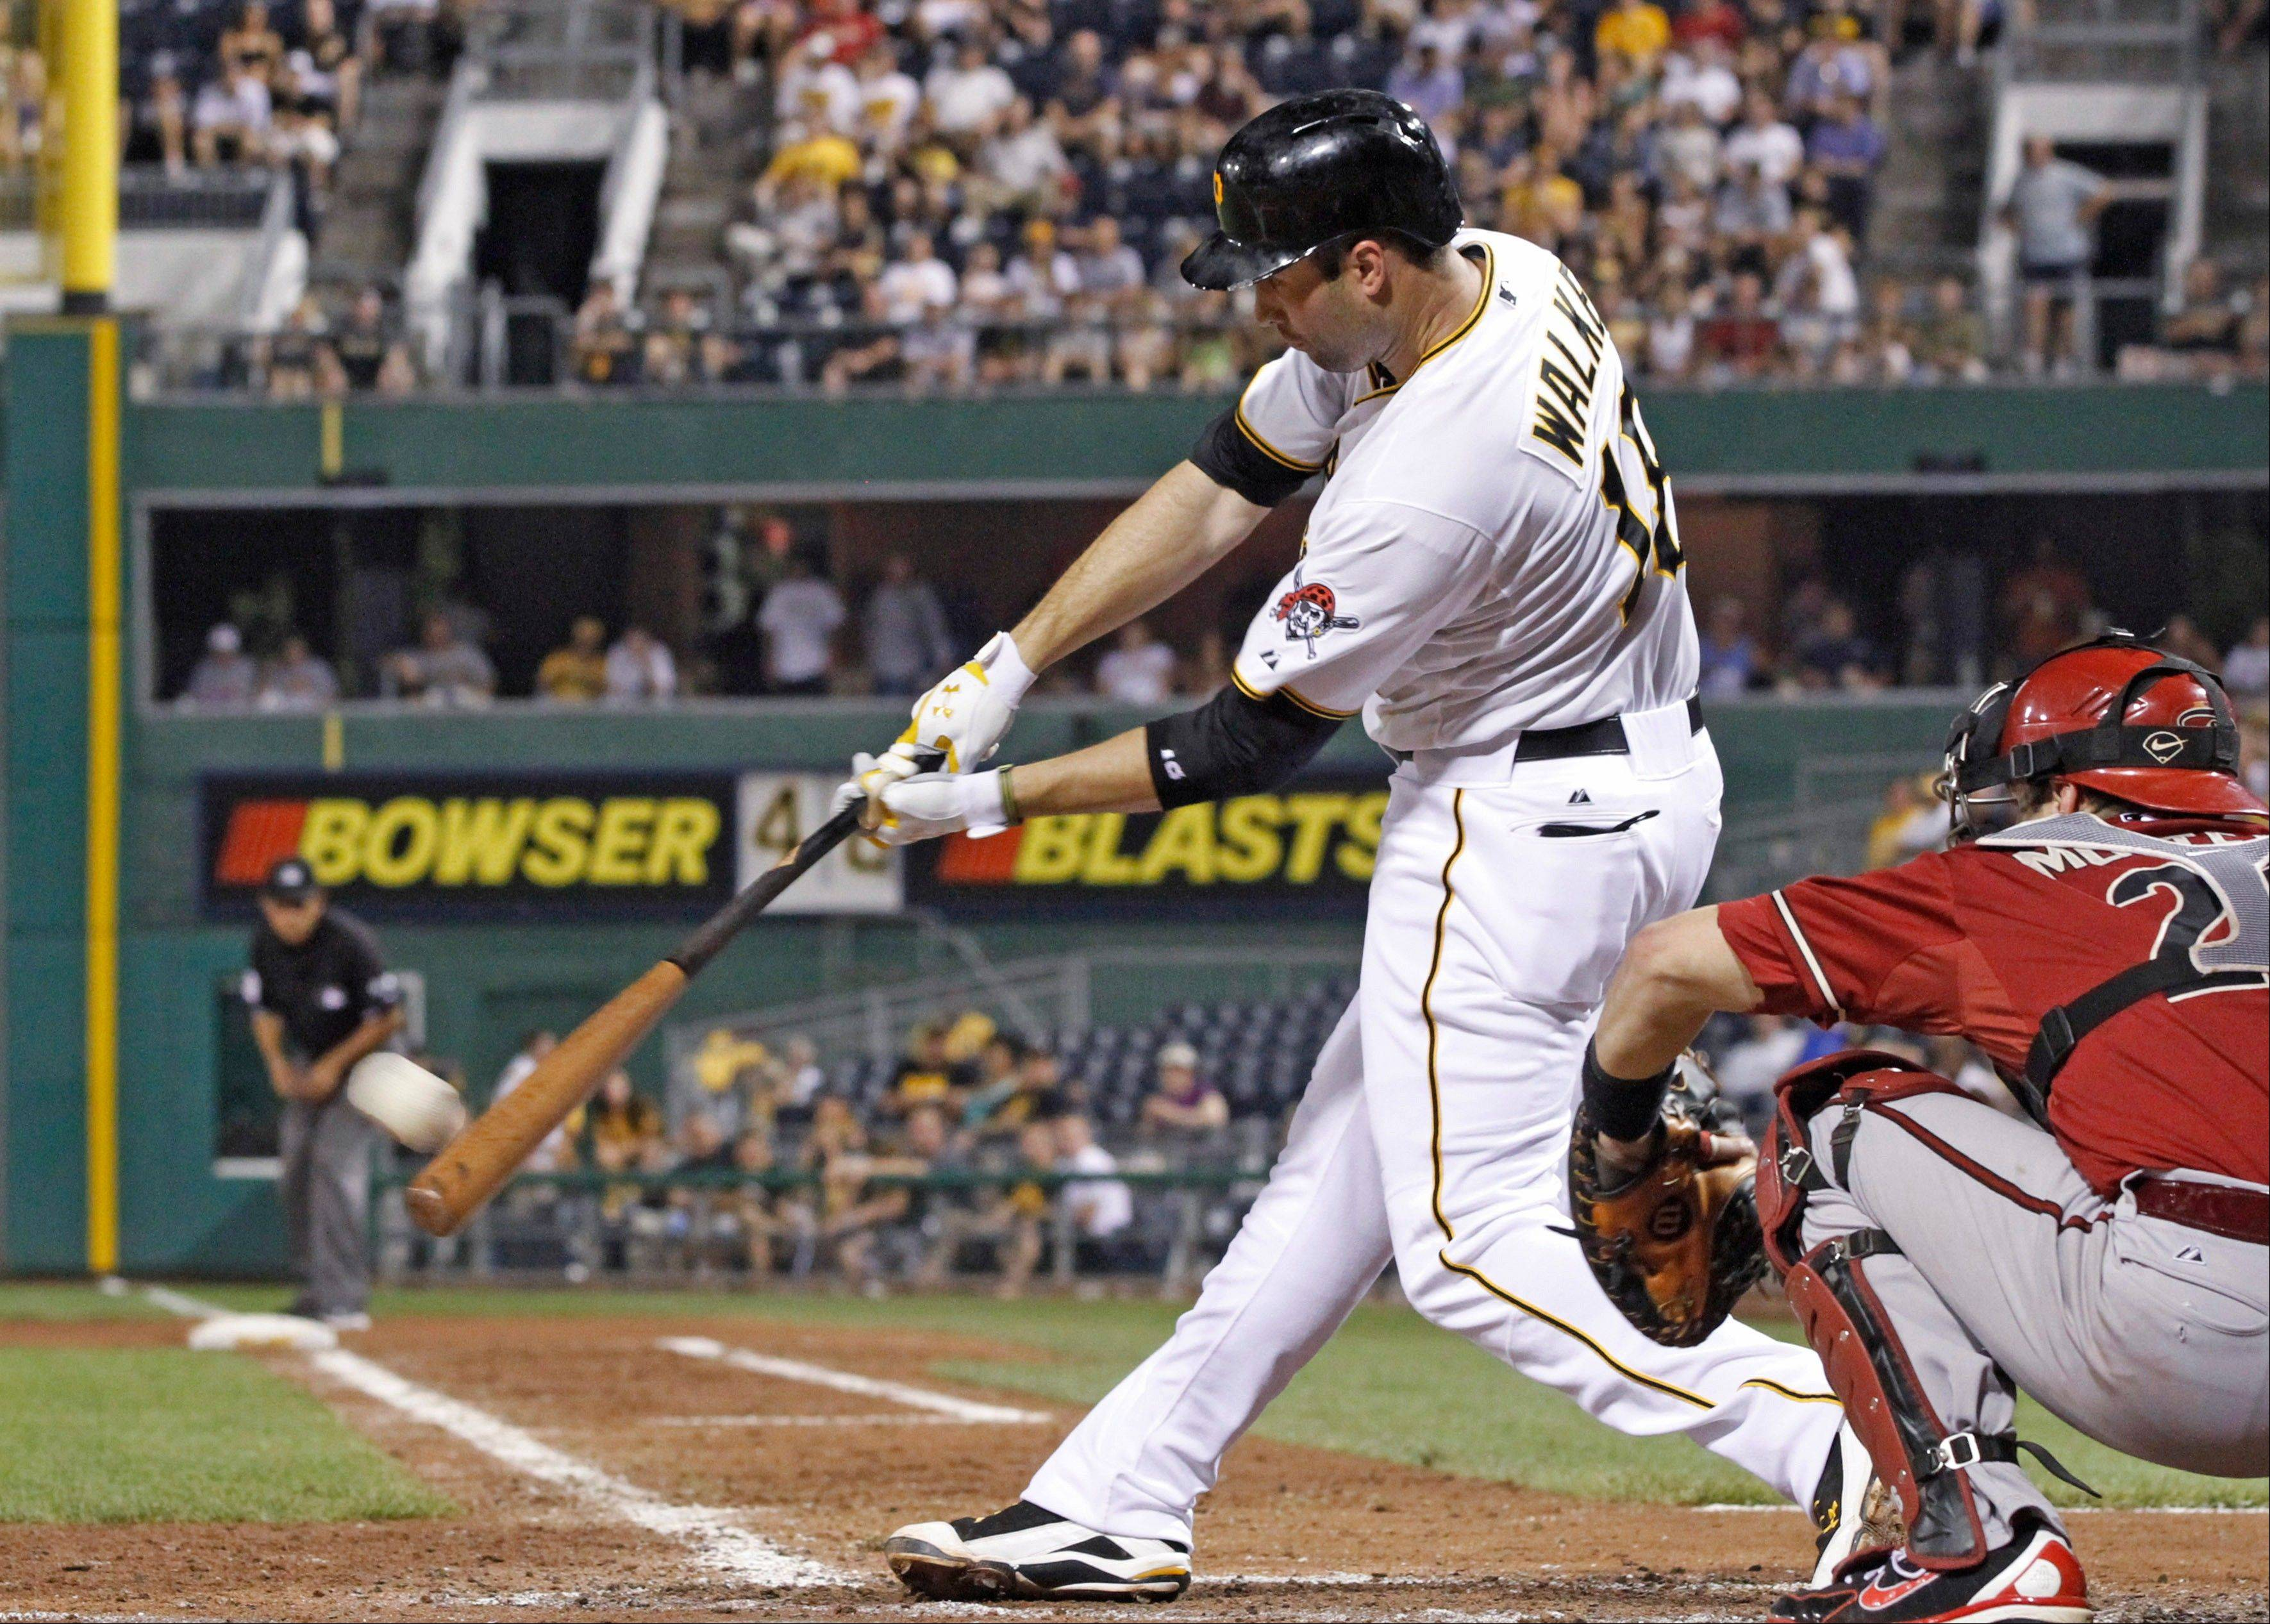 The Pirates' Neil Walker hits a double to drive in two runs in the fifth inning Wednesday at home against the Diamondbacks.